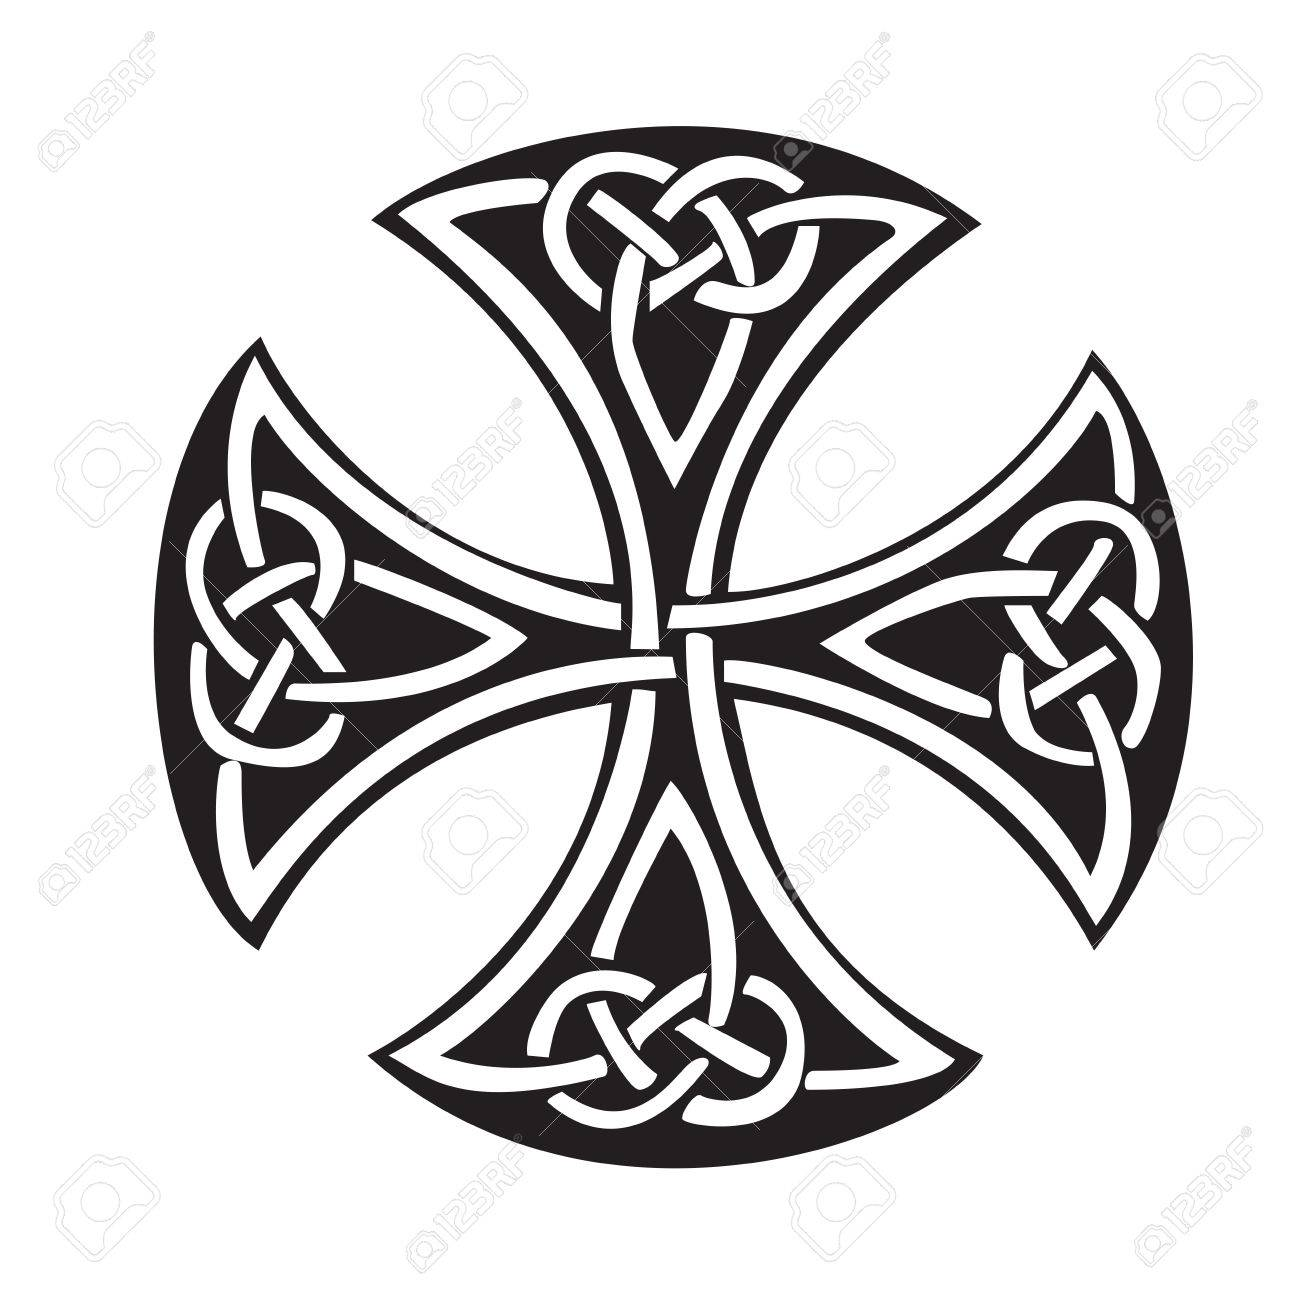 celtic cross royalty free cliparts vectors and stock illustration rh 123rf com celtic cross vector file ornate celtic cross vector